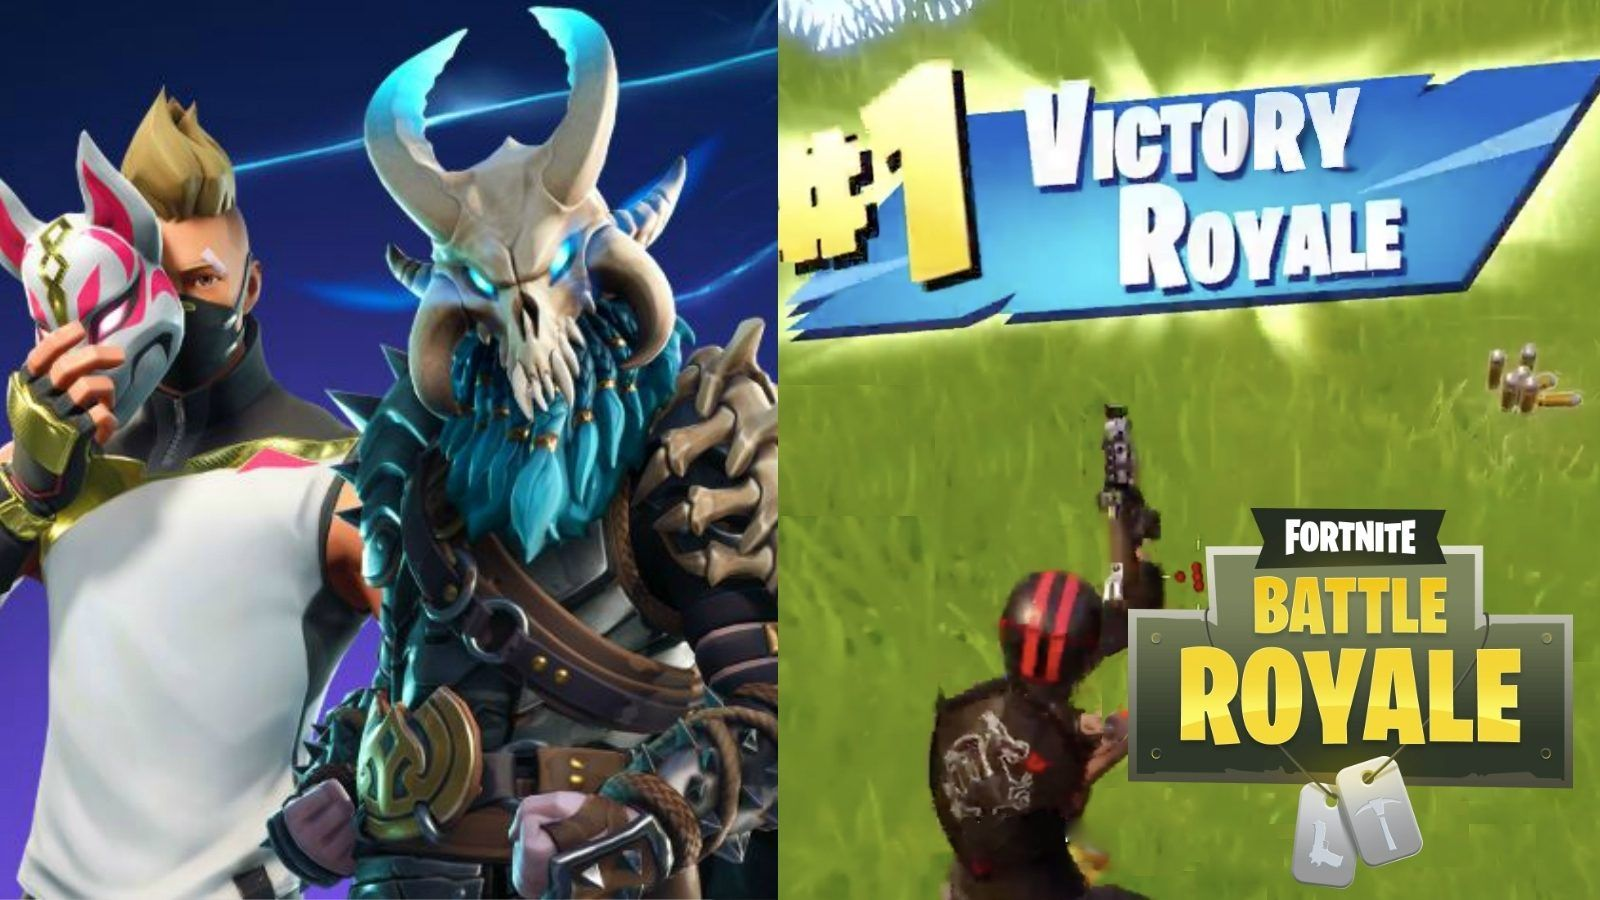 1600x900 Brand New Fortnite Victory Royale Screen and Slow-Mo Animation ...